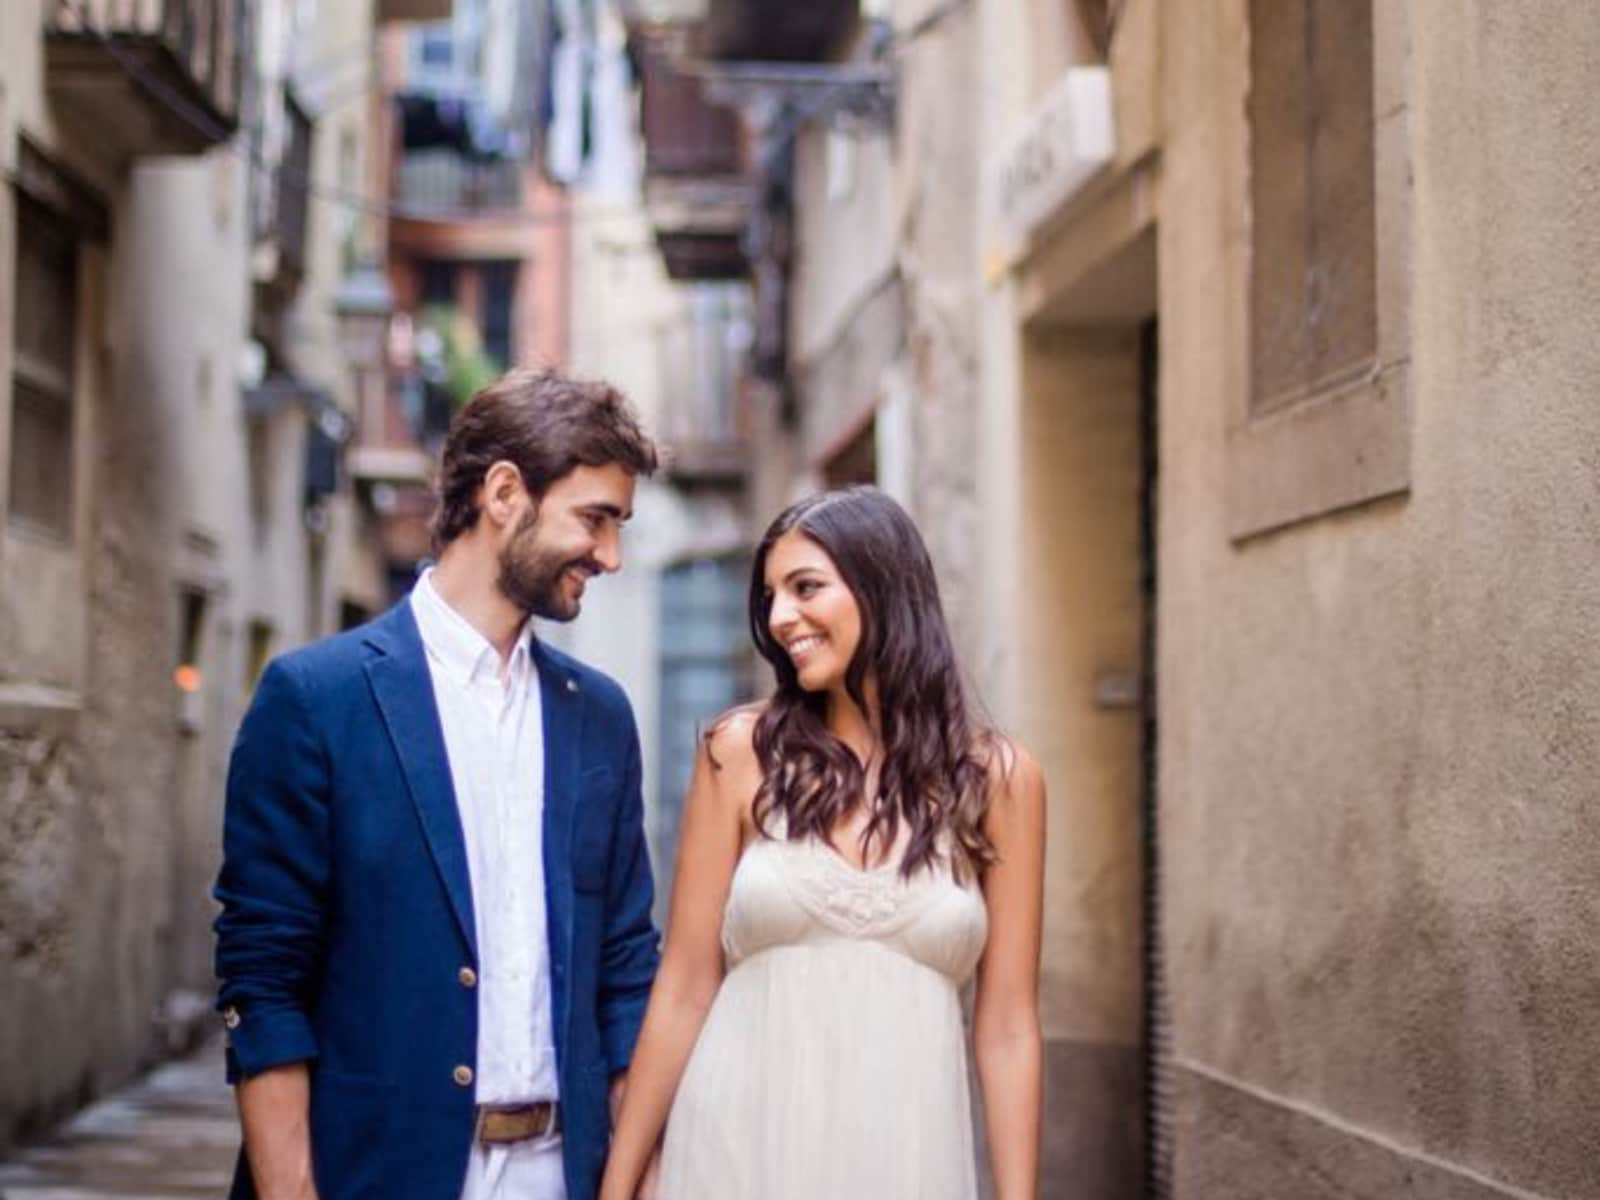 Camille & Alber from Barcelona, Spain